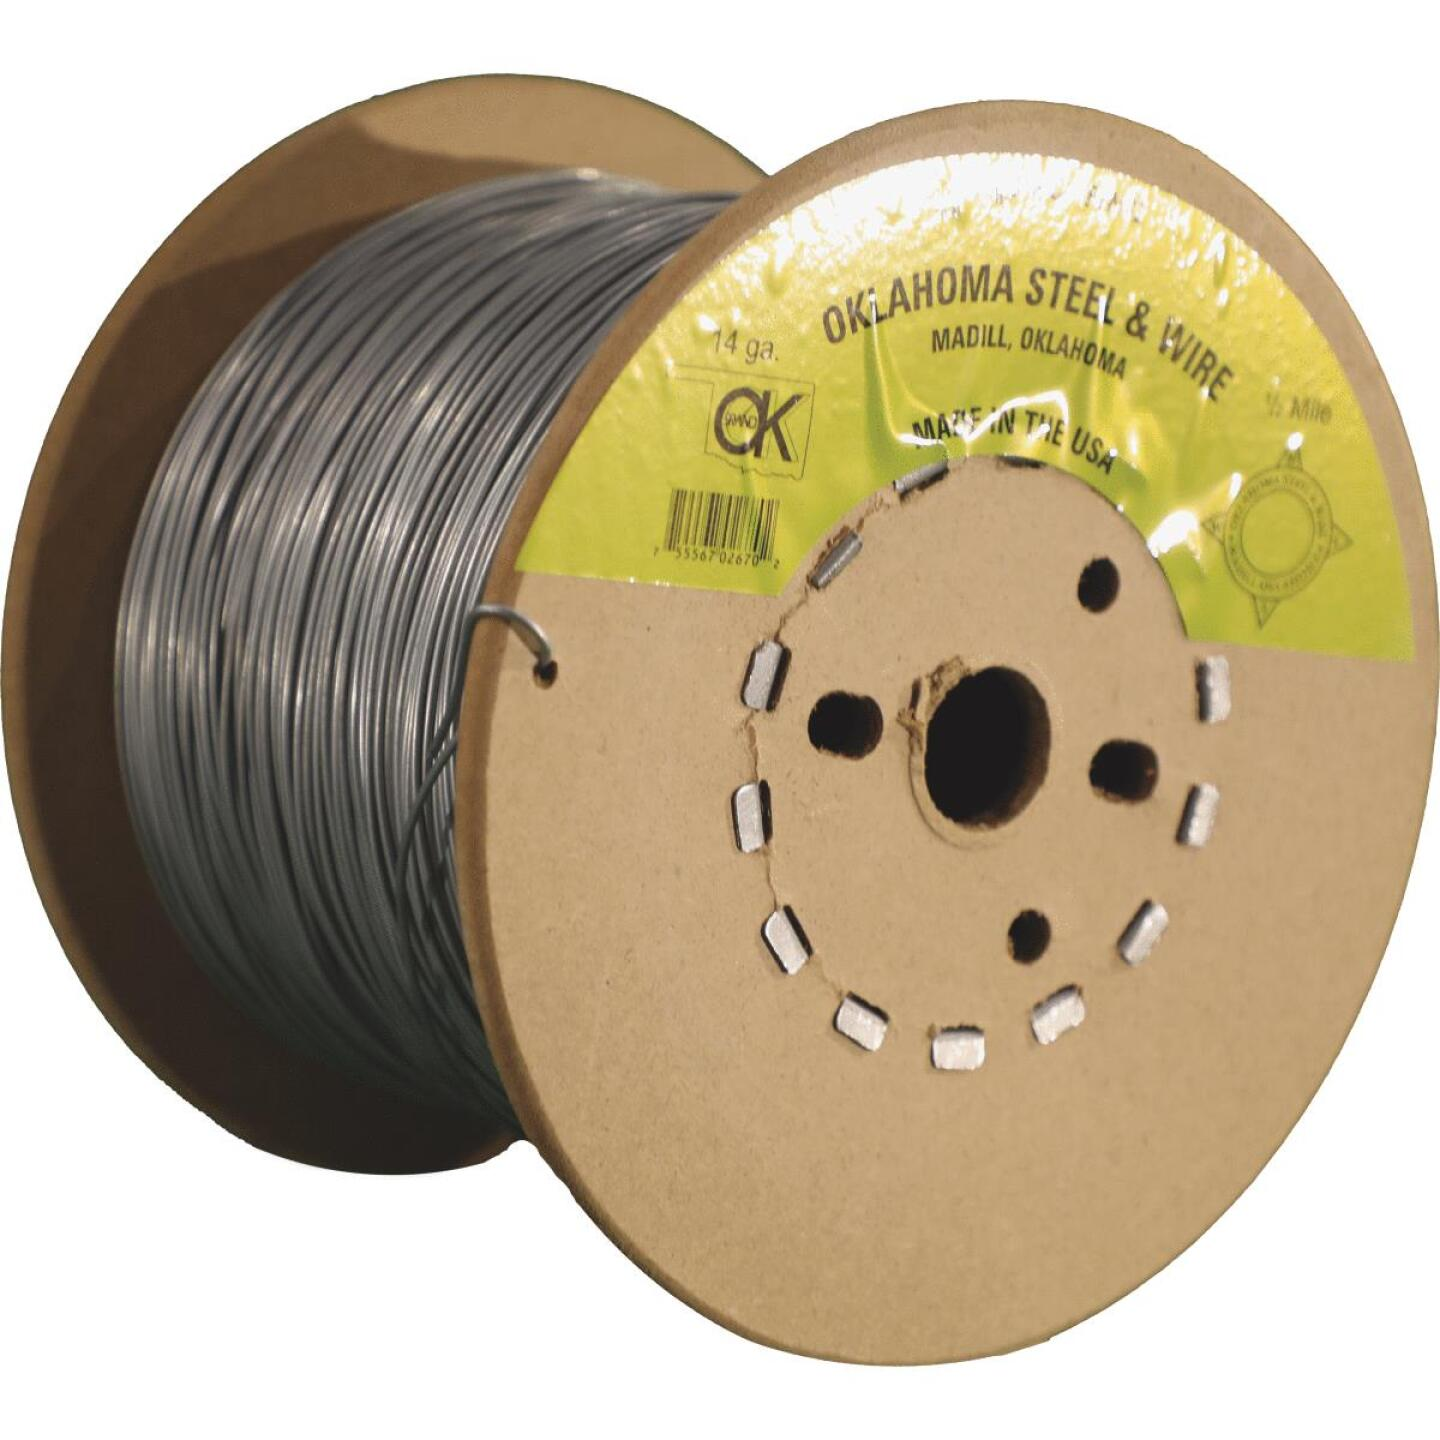 Oklahoma Steel & Wire 1/2-Mile x 17 Ga. Steel Electric Fence Wire Image 2